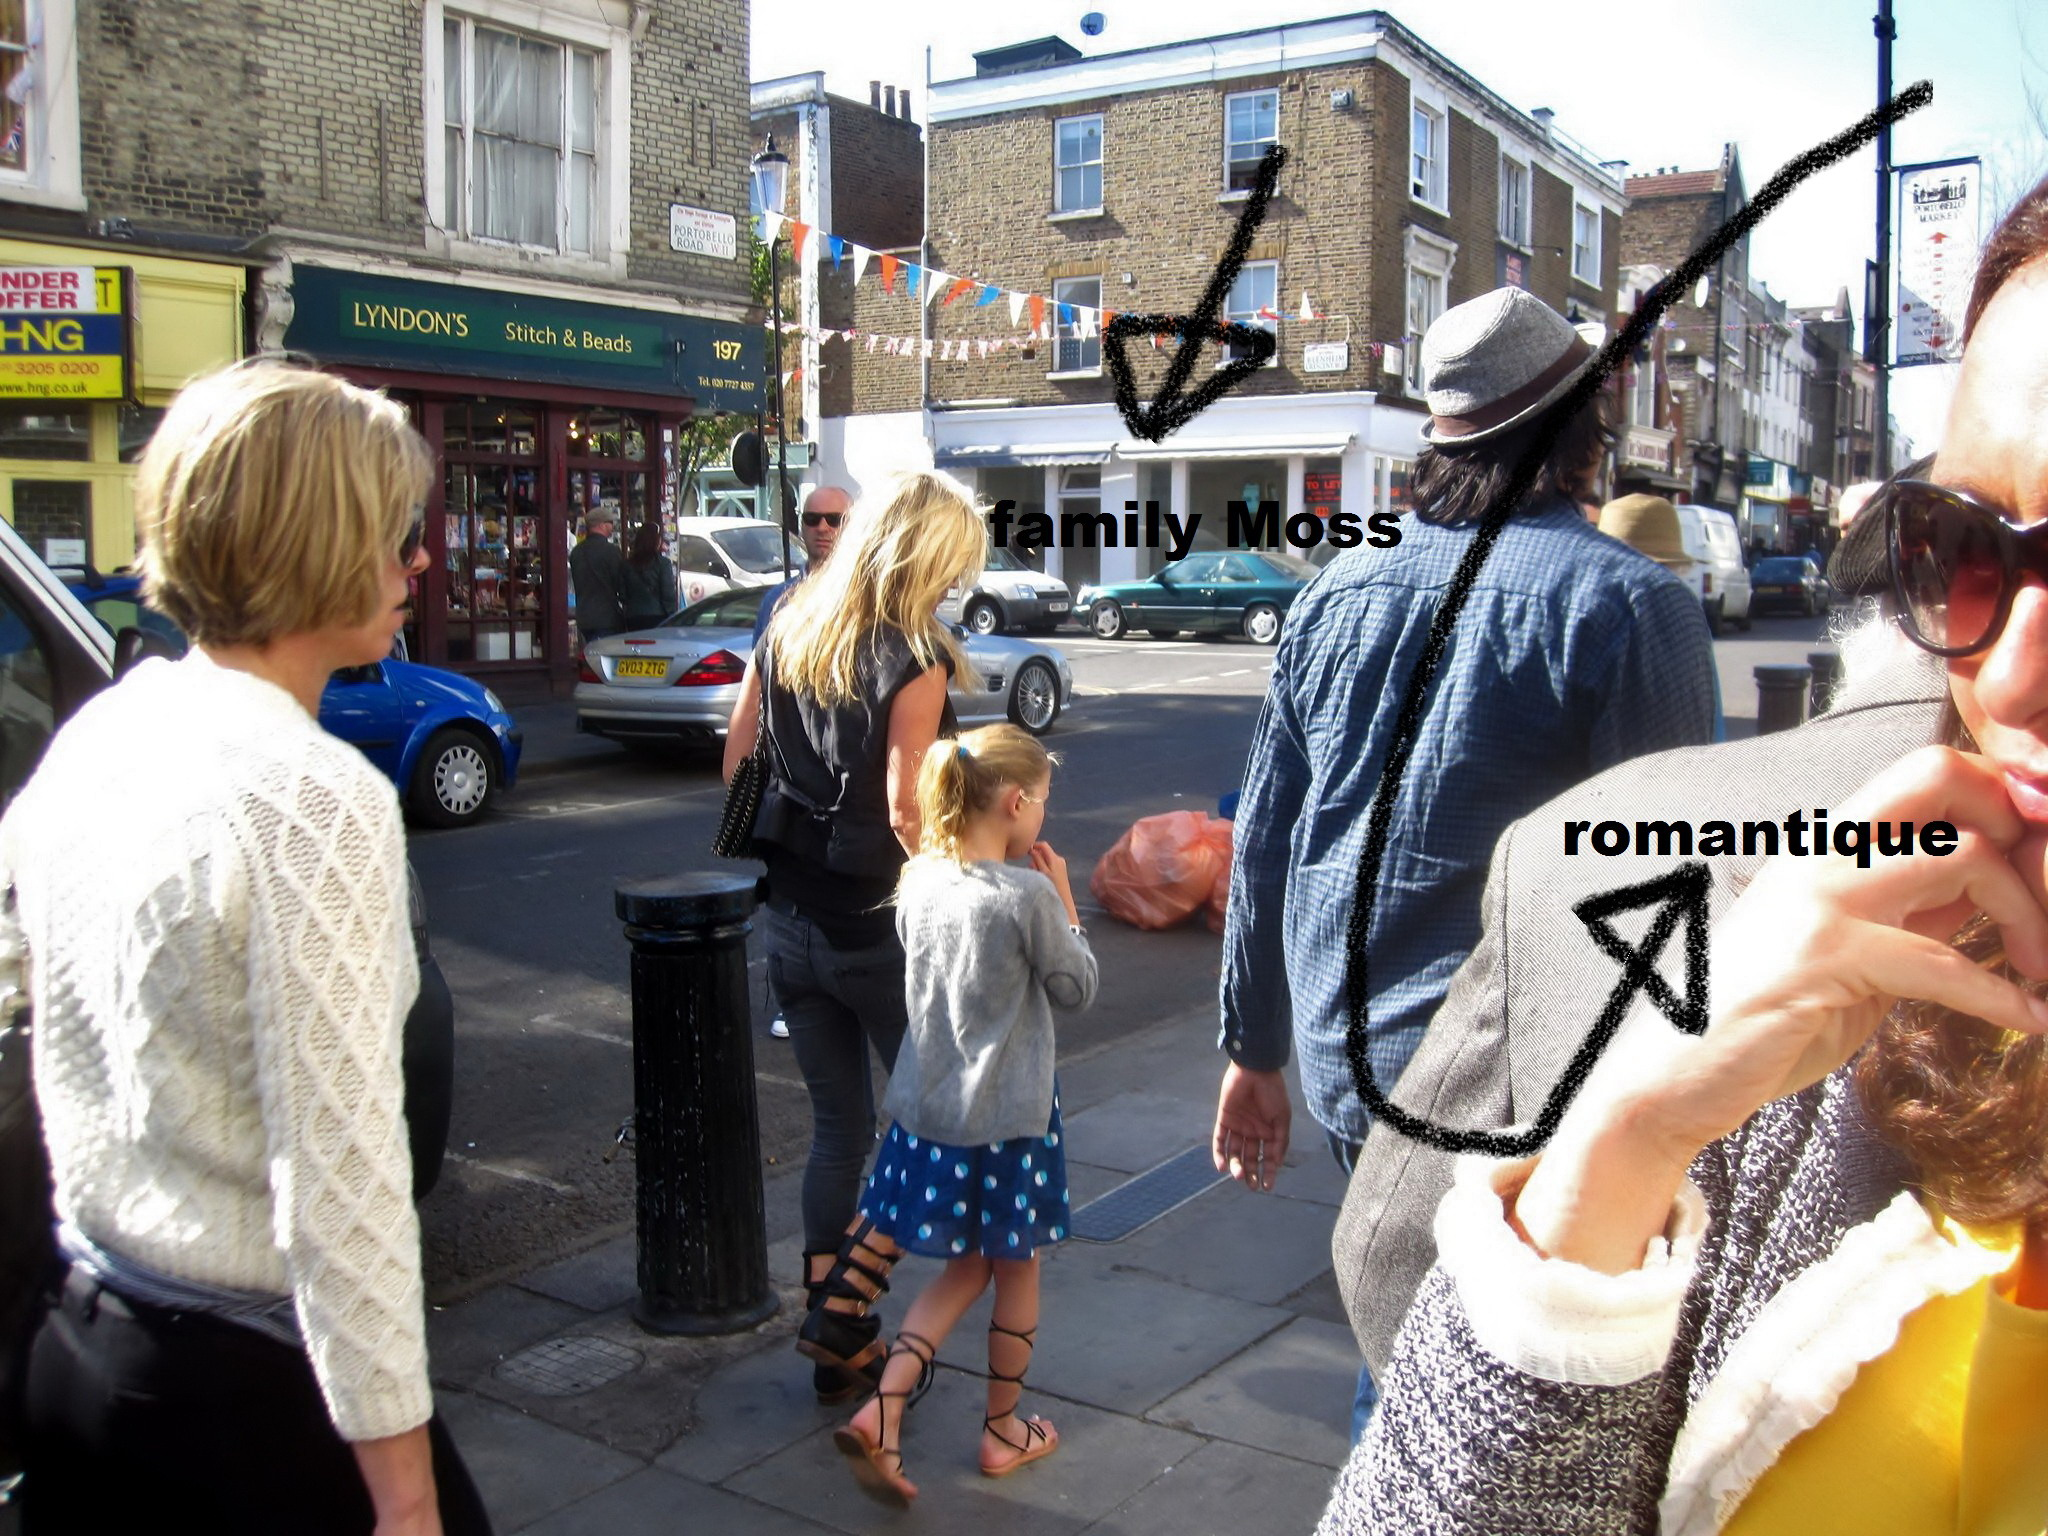 We bumped into Kate Moss in Notting Hill two years ago. Her daughter, Lila Grace, seemed very cute and well mannered. She was patiently waiting while her mum met with friends and chatted for a while in front of the shops.